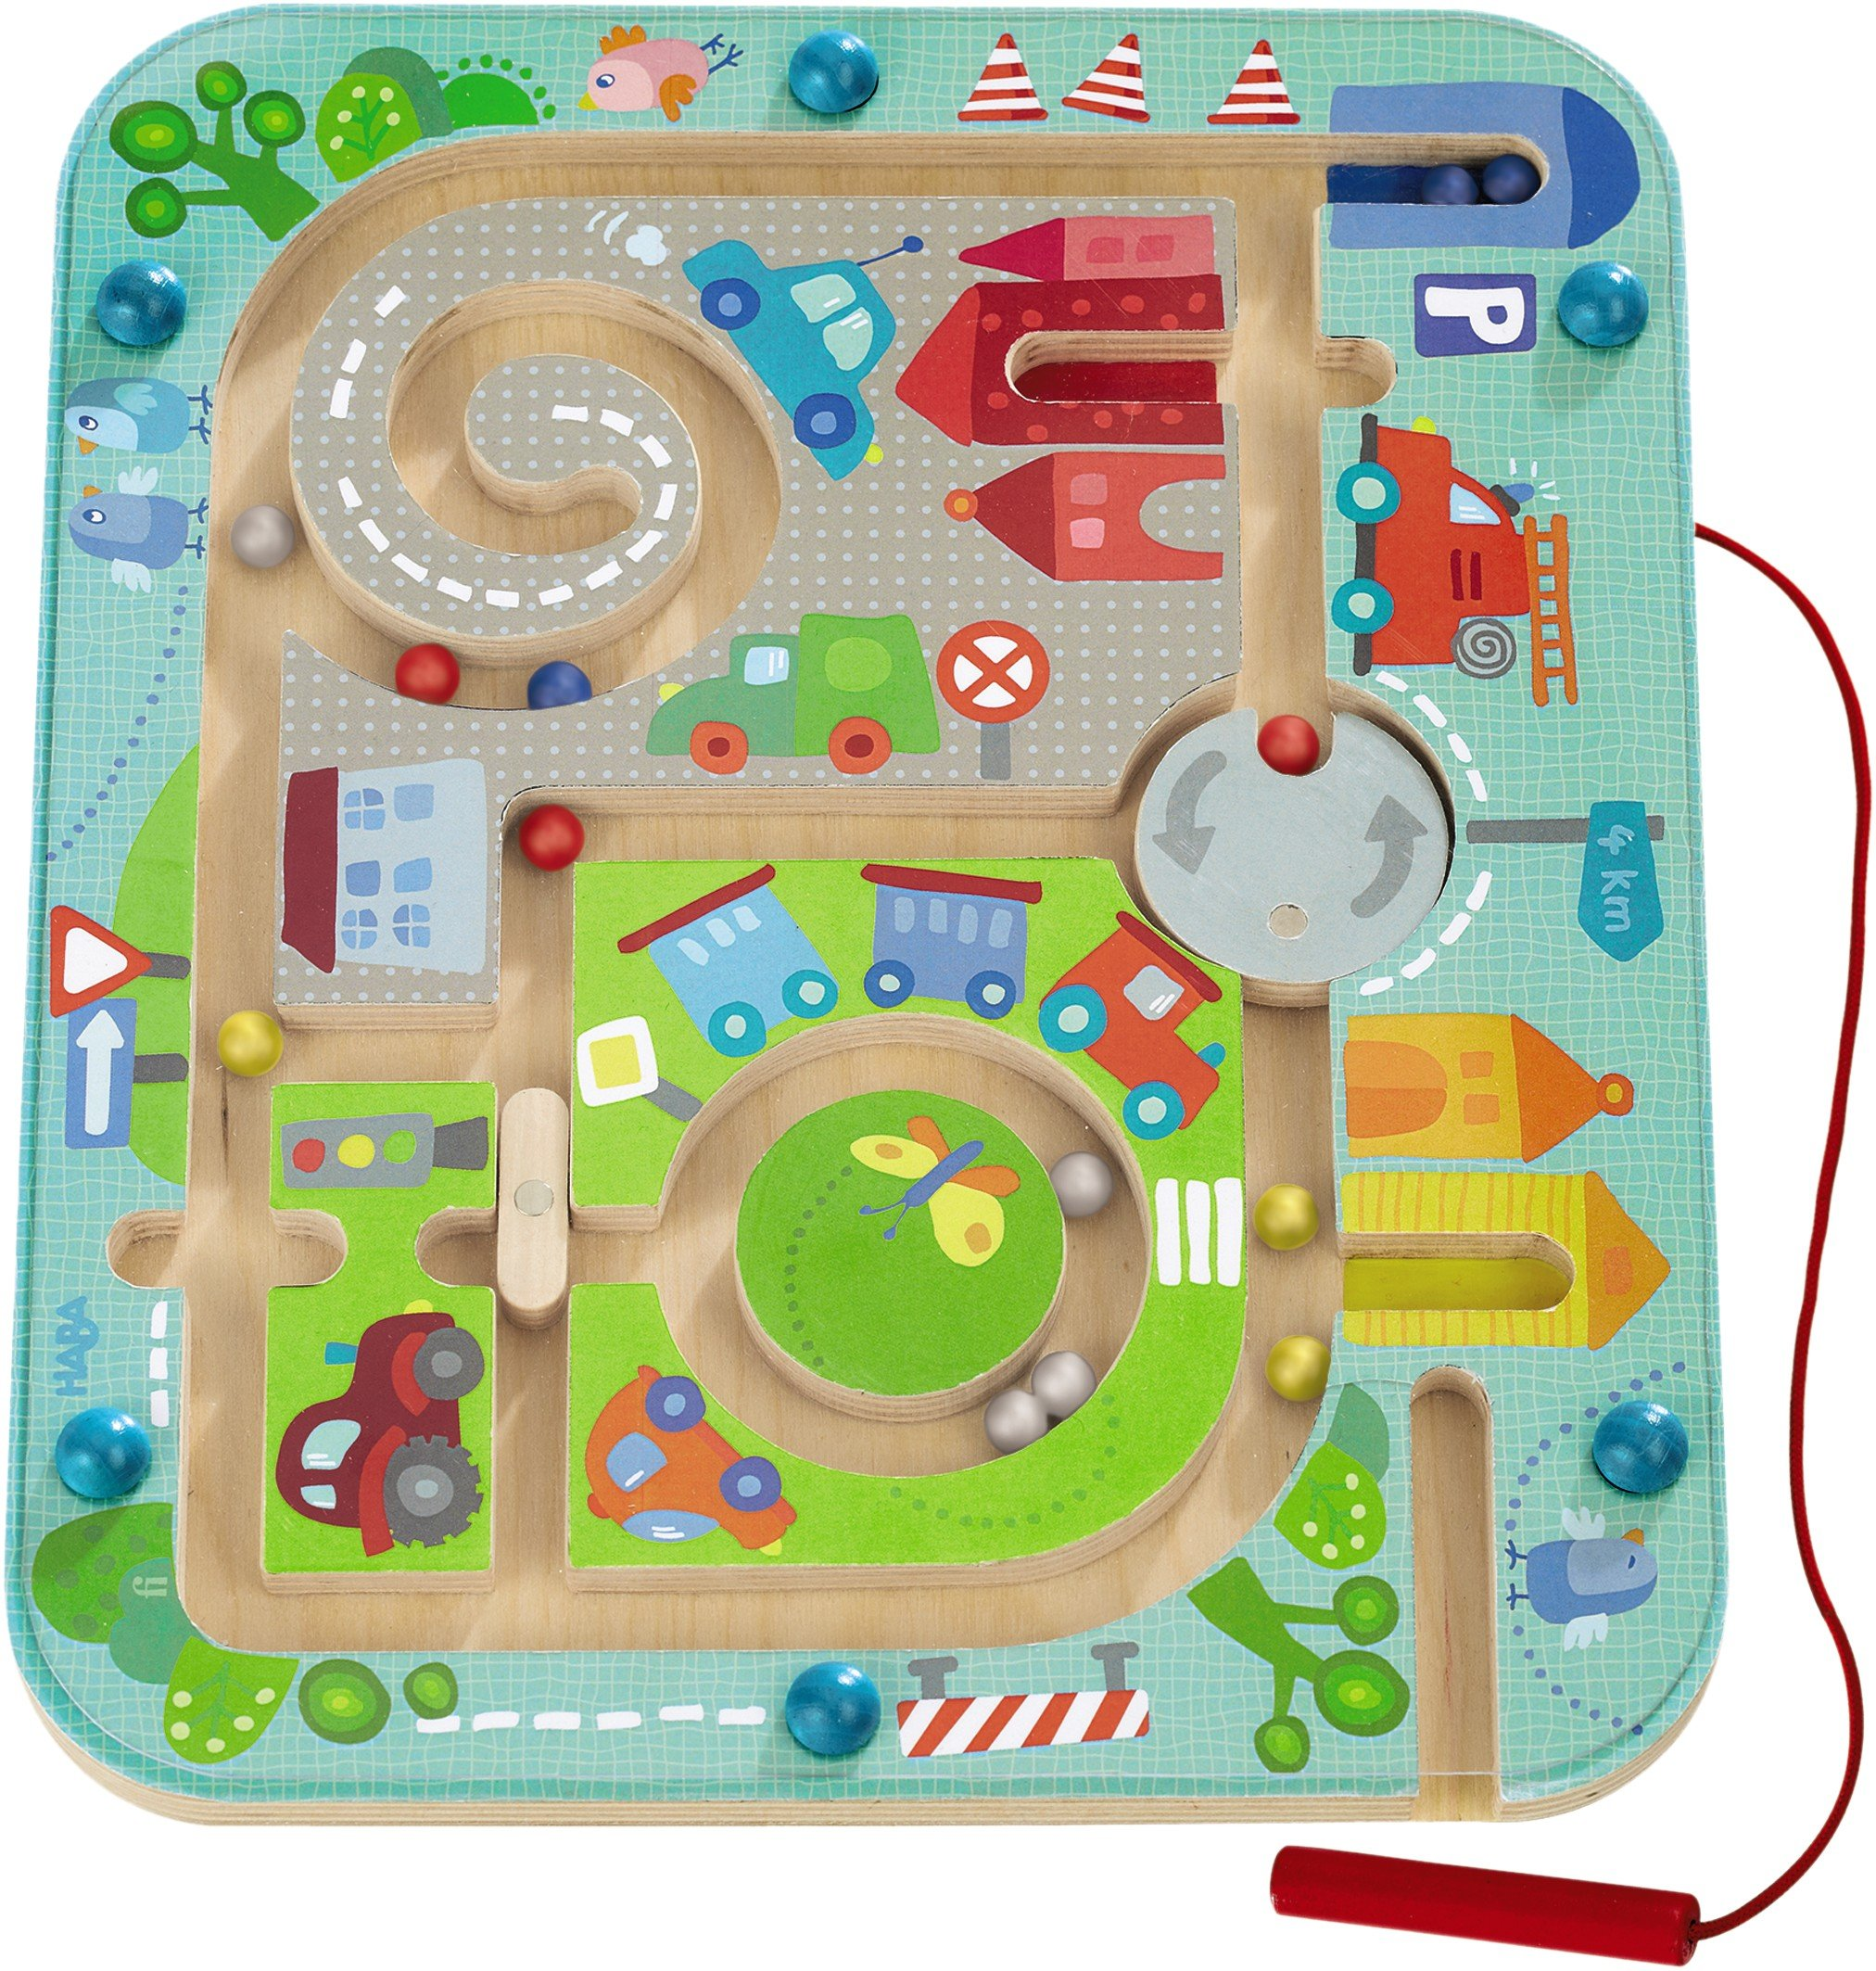 HABA Town Maze Magnetic Game Developmental STEM Activity Encourages Fine Motor Skills & Color Recognition with Roundabout, Roadblock and Fun City Theme by HABA